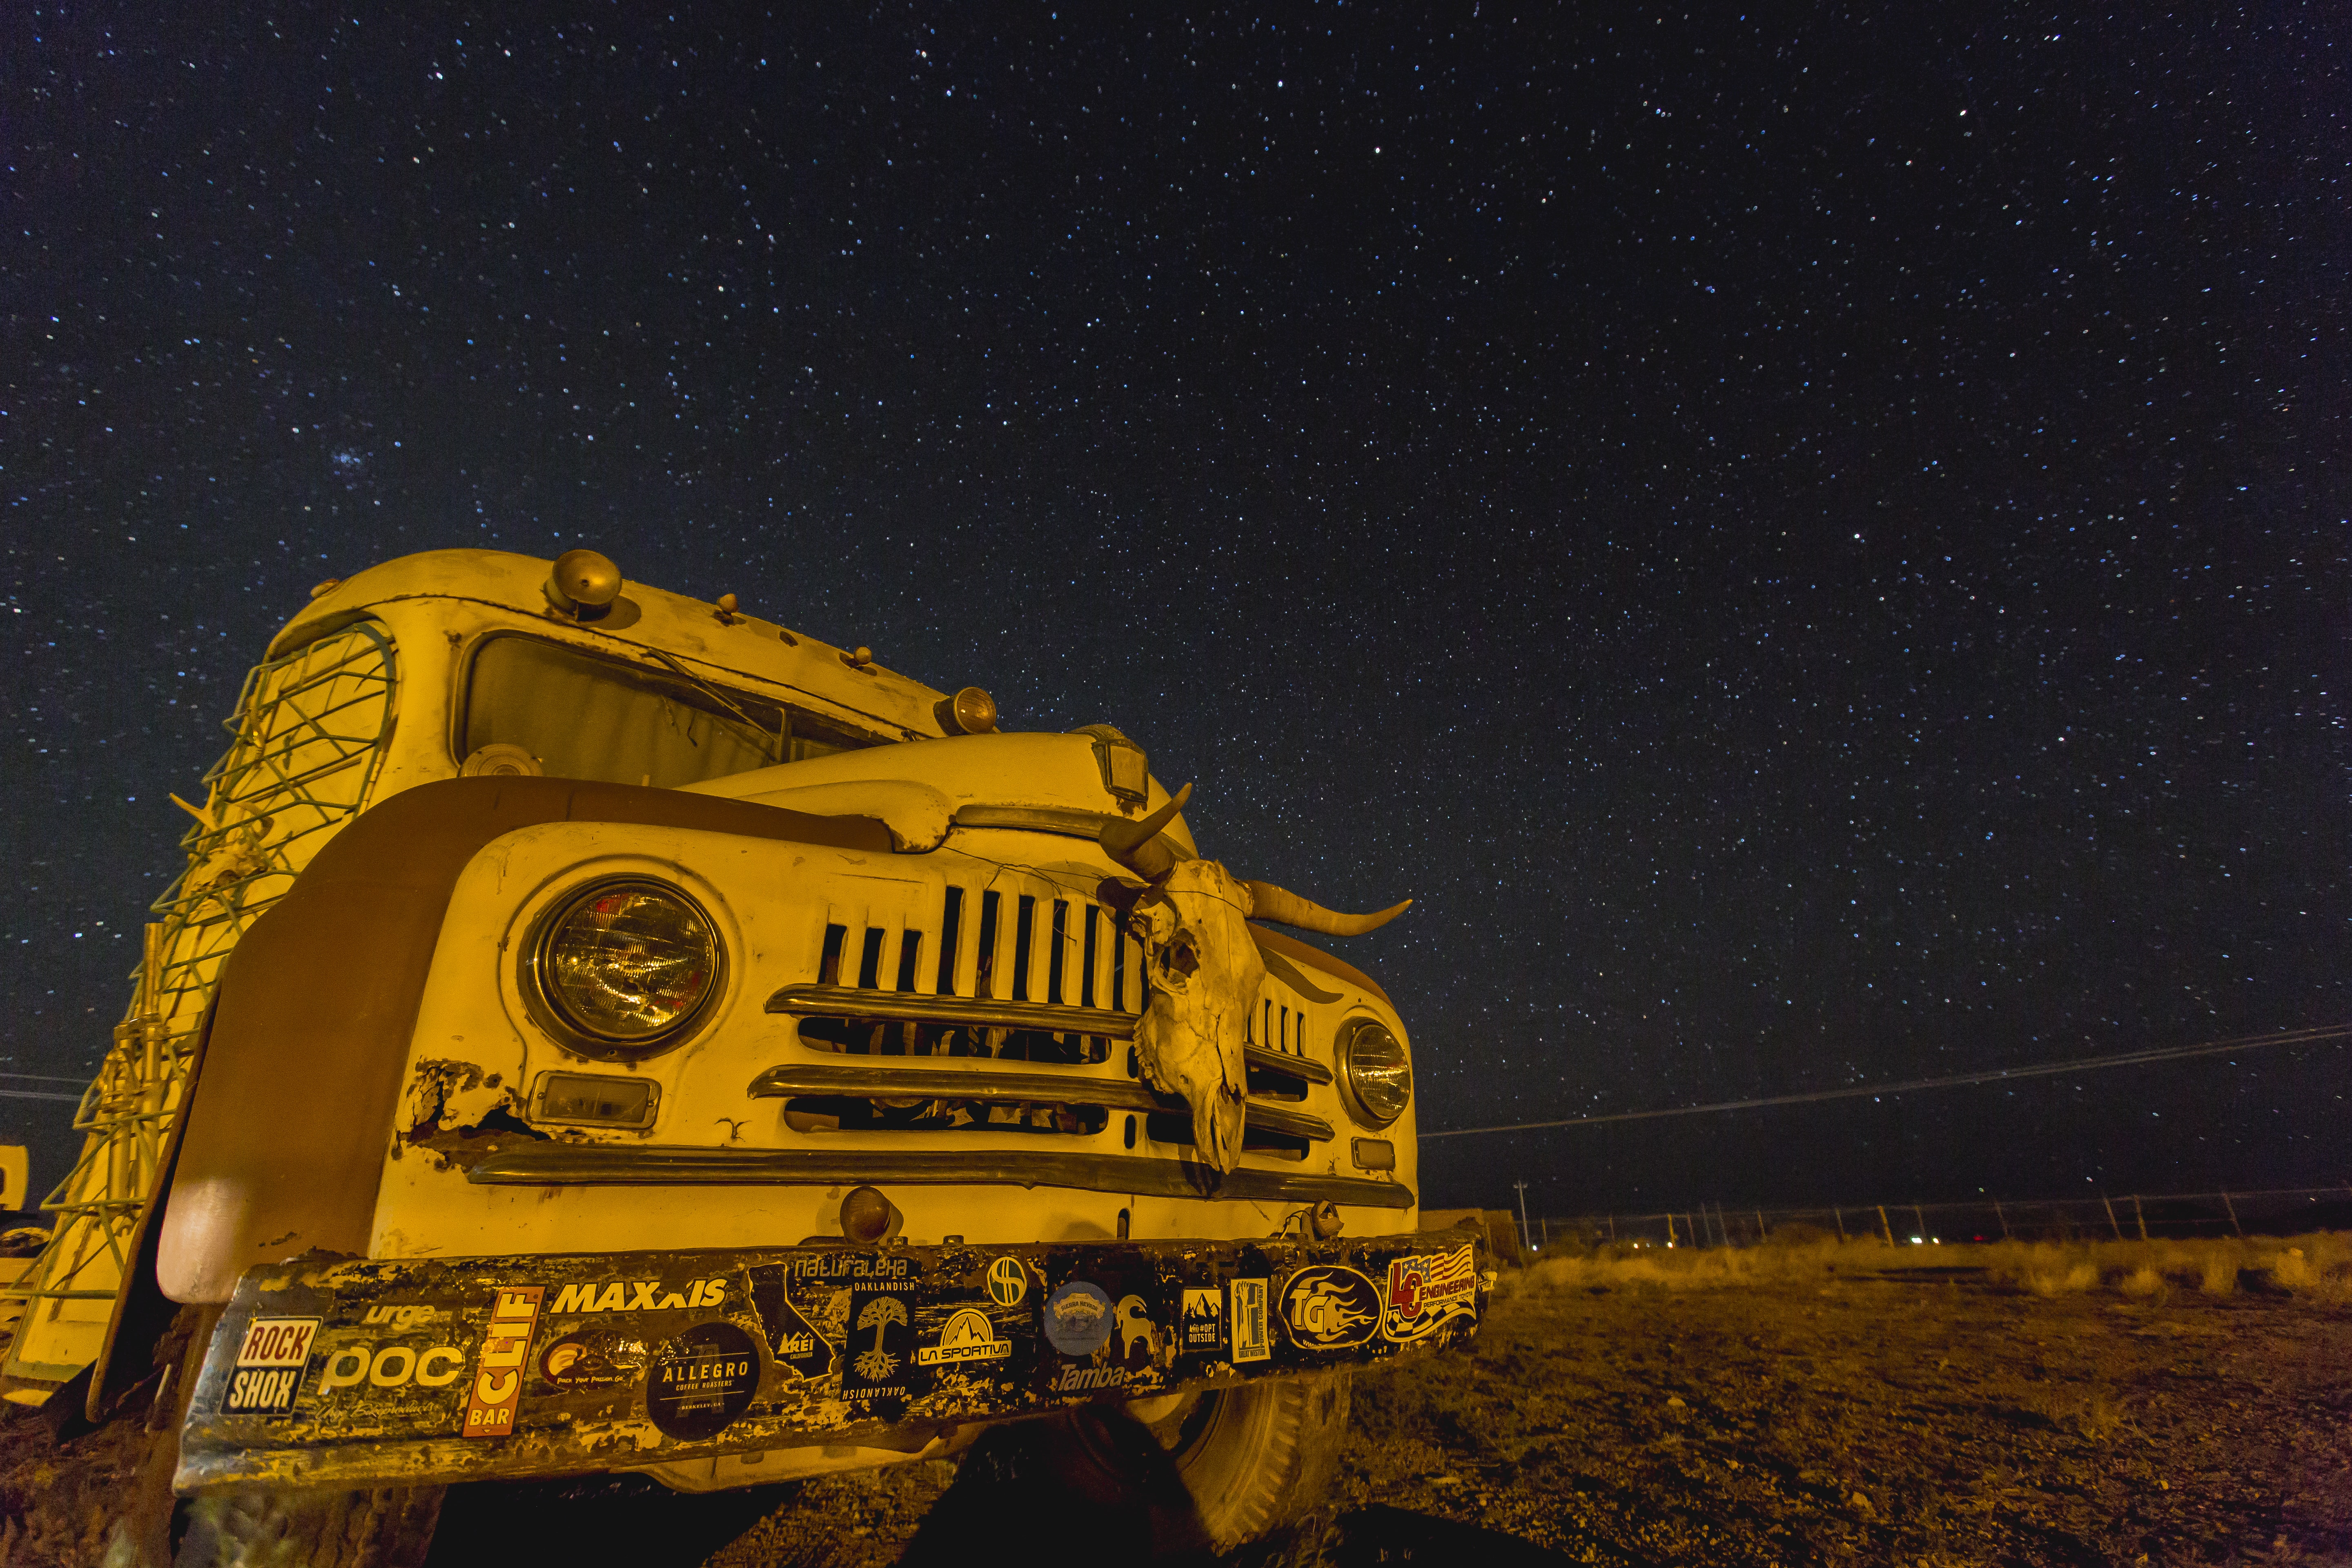 photo of white and brown bus with stars during nighttime